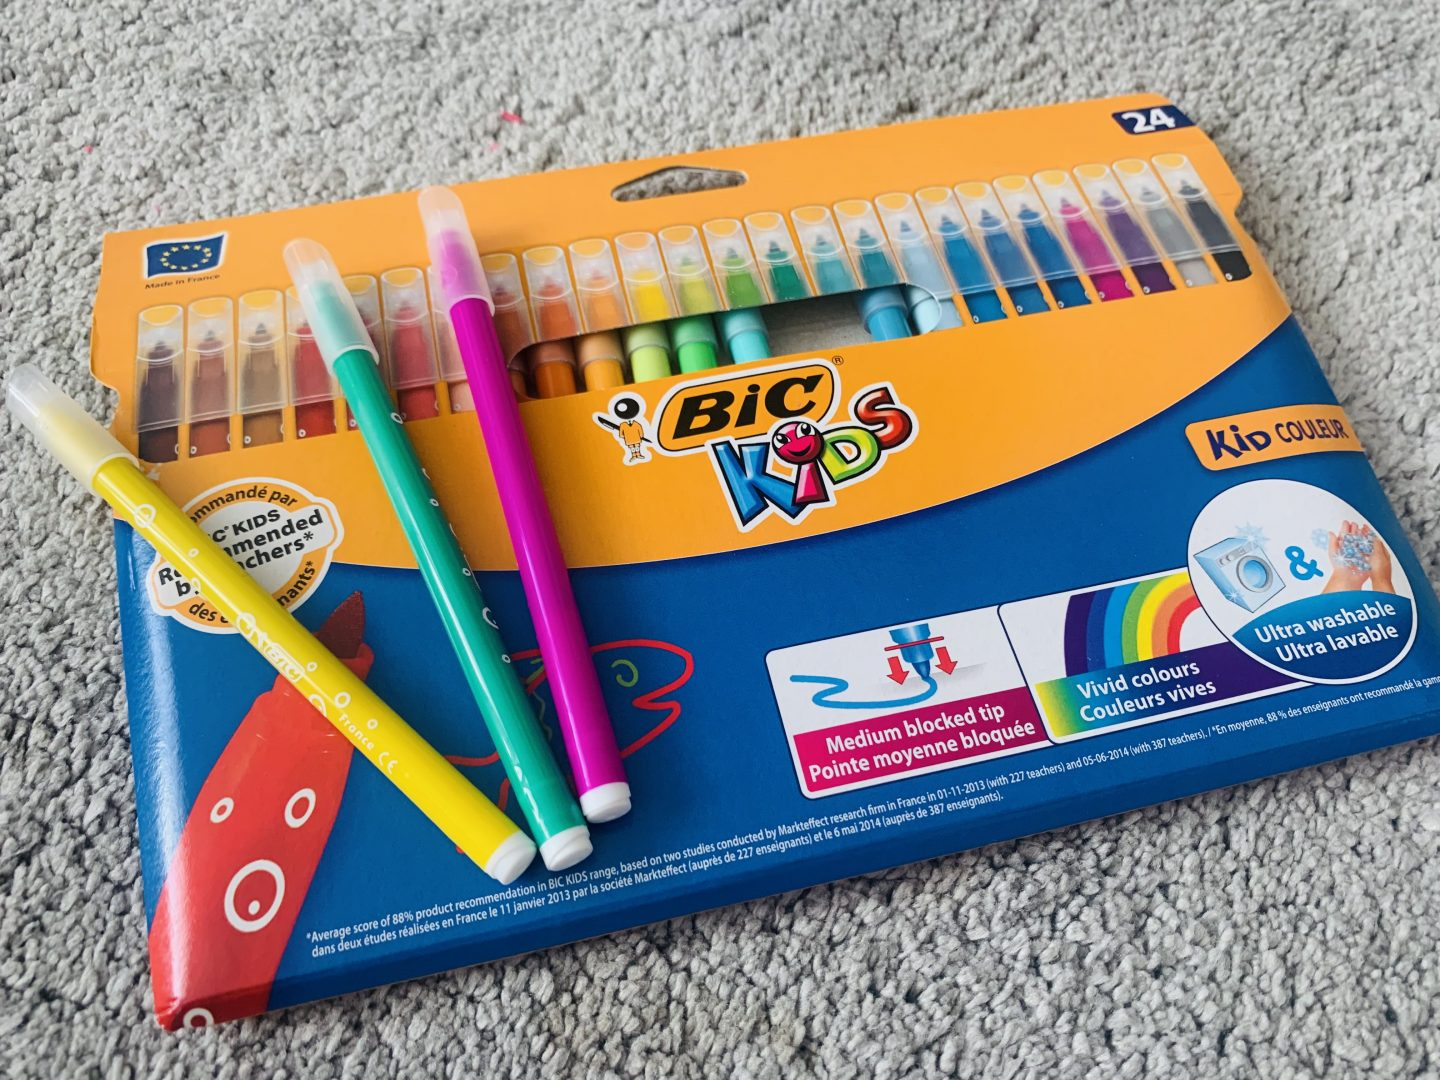 Pack of BIC felt tips from Office Stationery competition